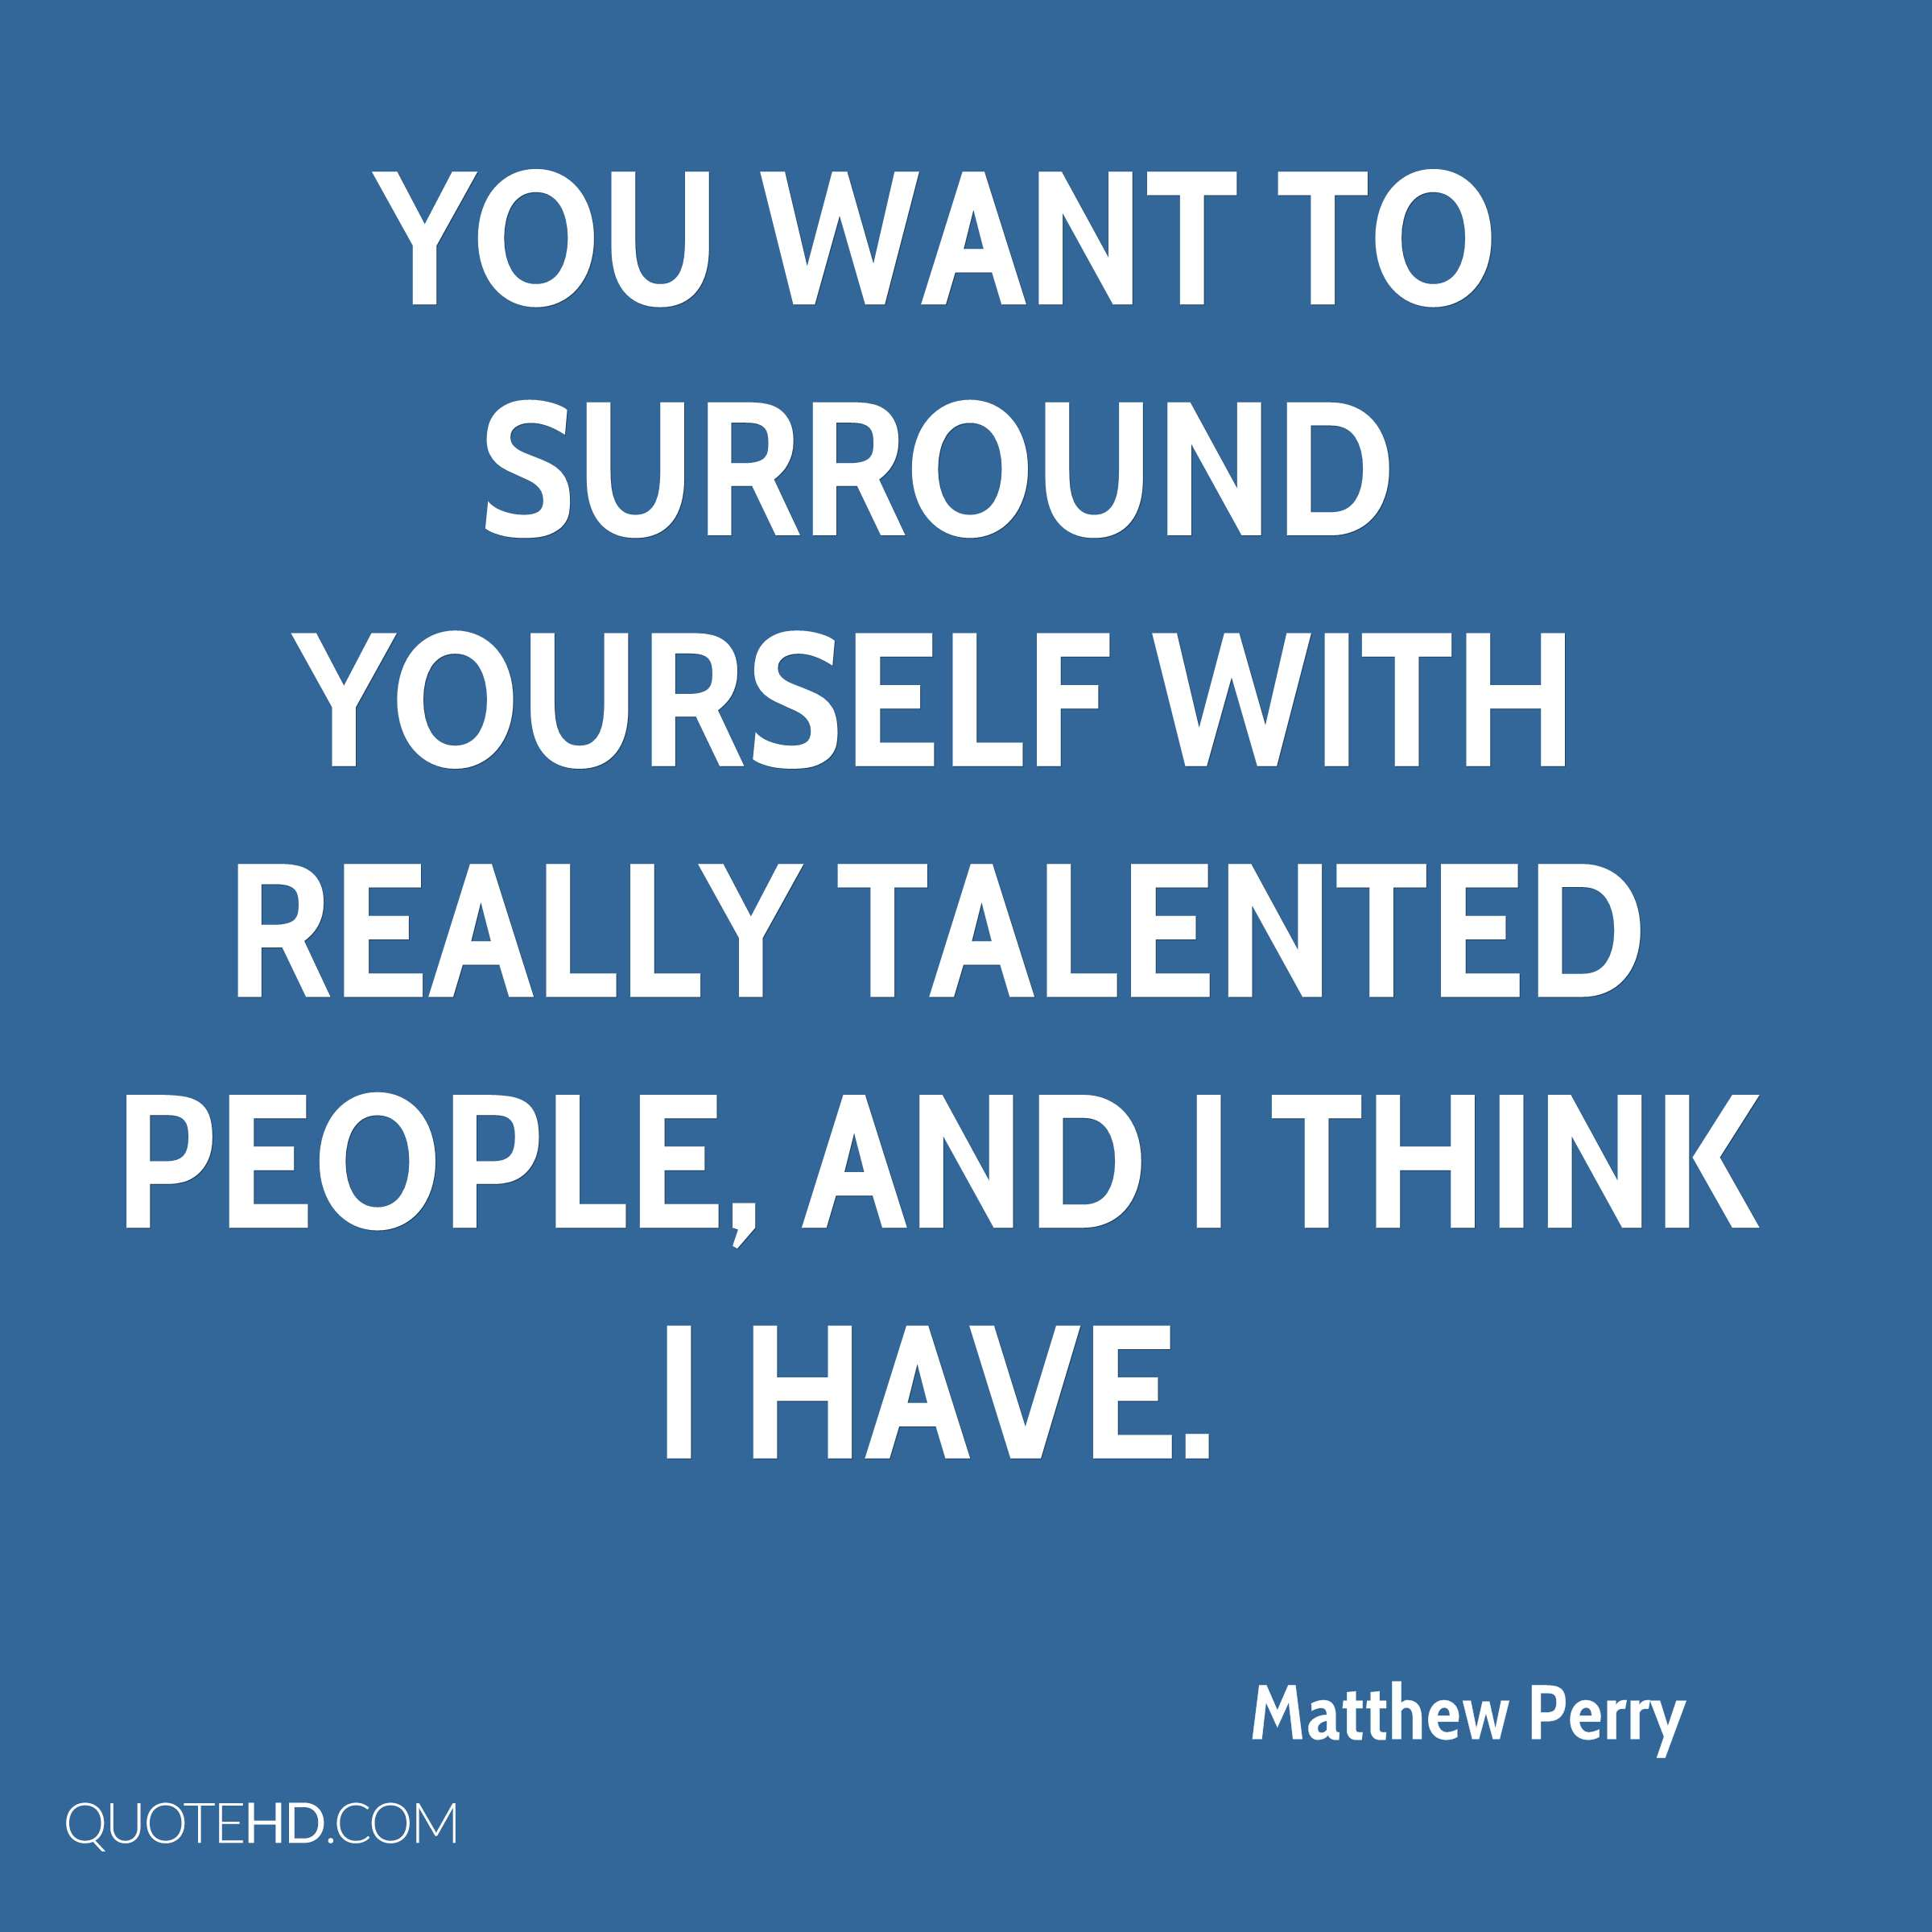 Matthew Perry Quotes | QuoteHD